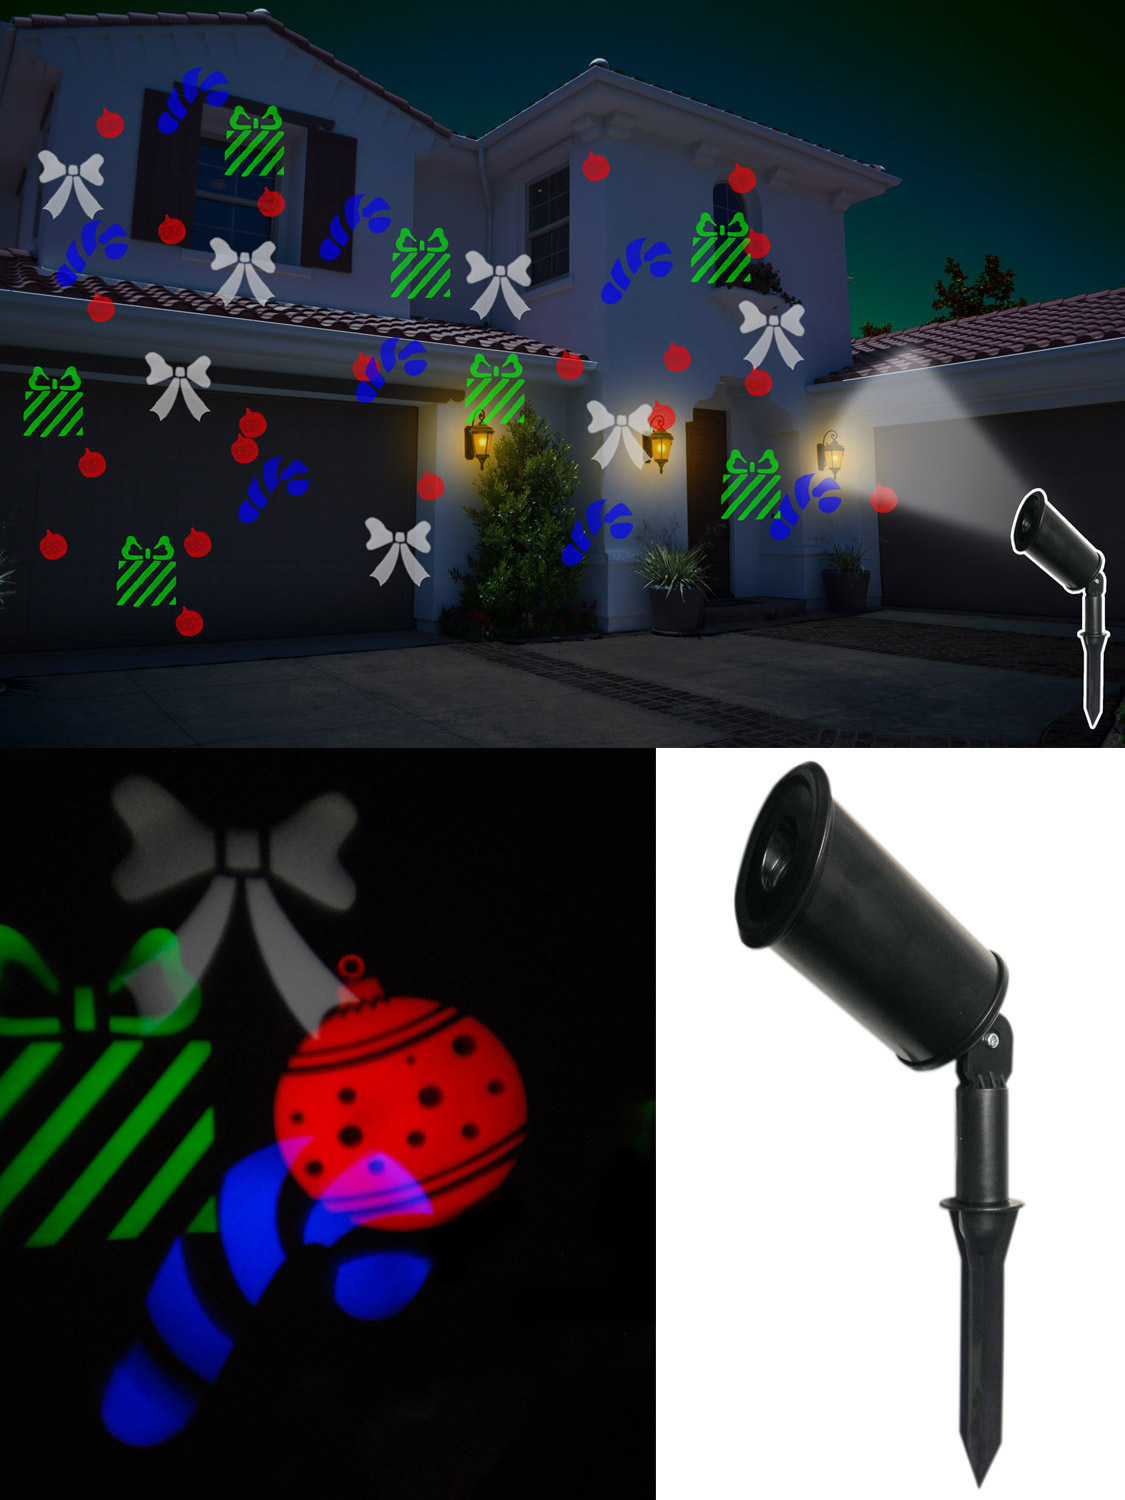 Projecteur Laser Noel Exterieur Outdoor Christmas Lights Projector Lamp Moving Snowflake